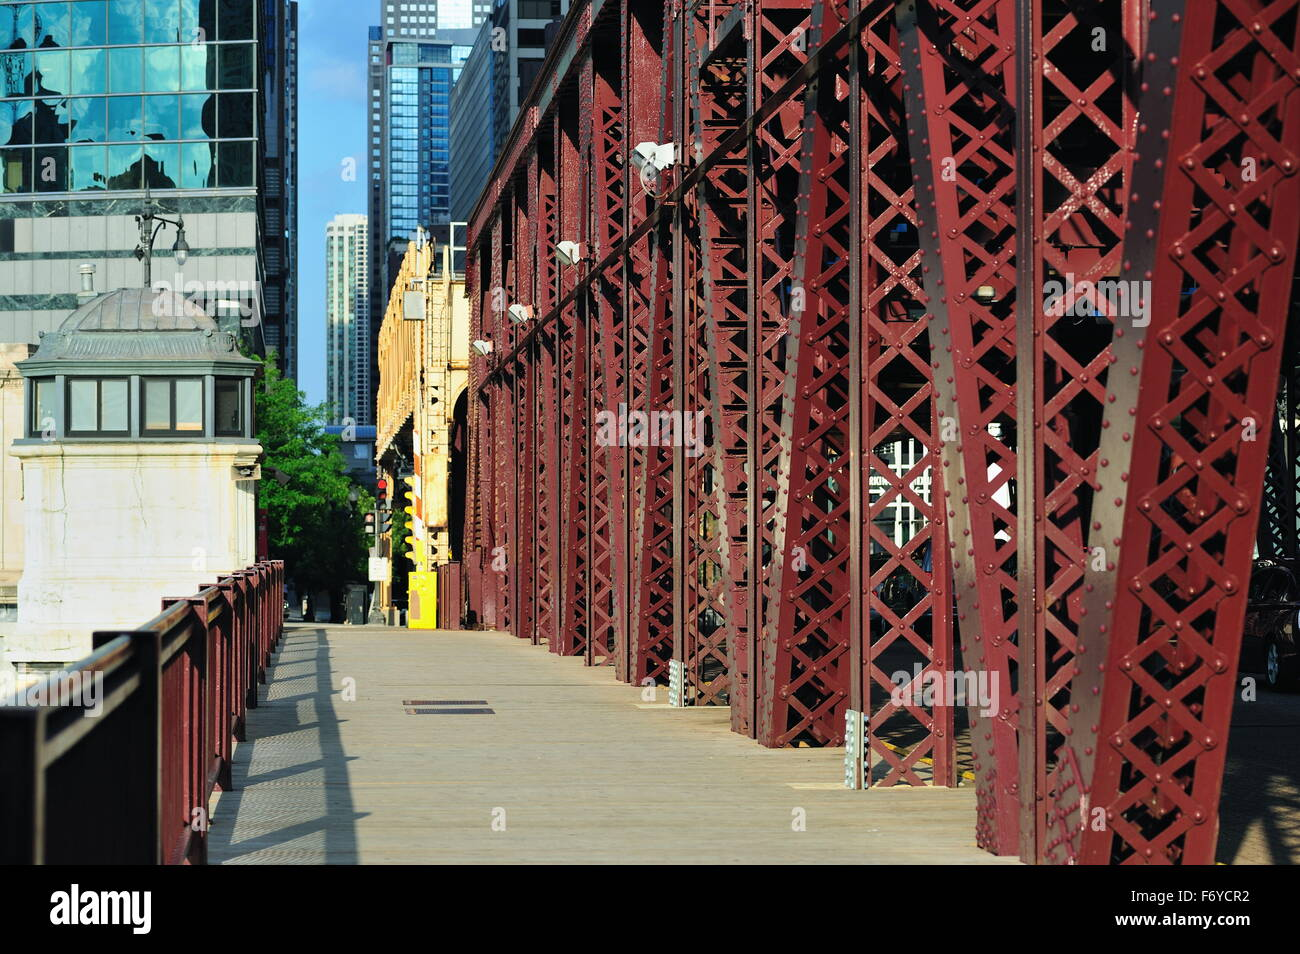 Girders and pedestrian deck on the double-deck Lake Street Bridge over the Chicago River in Chicago, Illinois, USA. - Stock Image